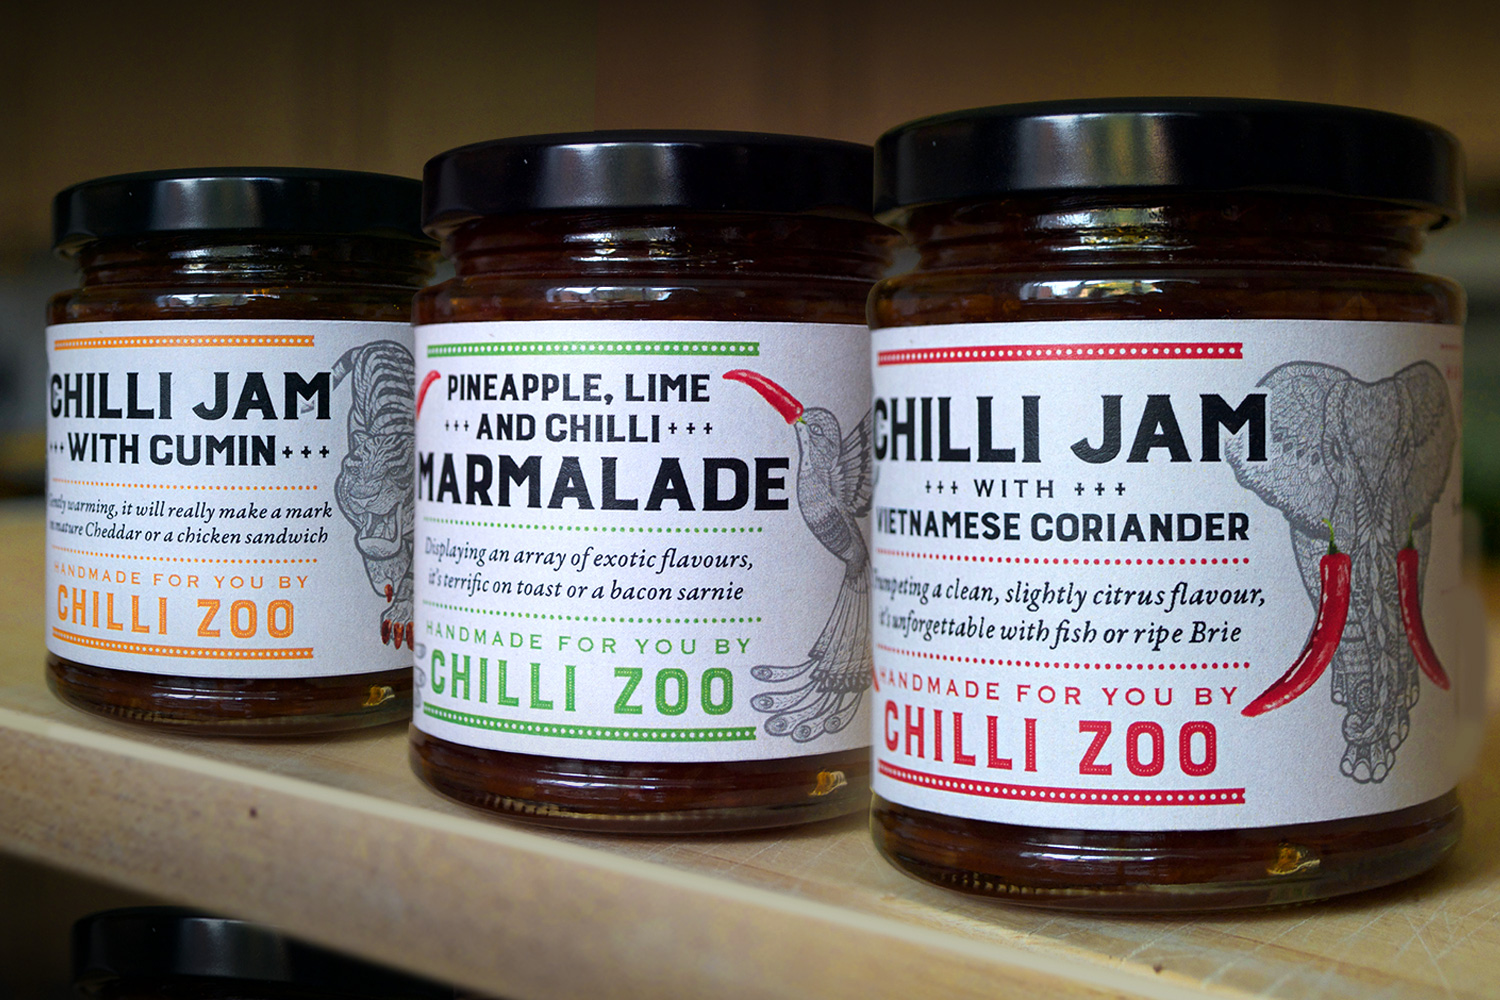 New Chilli Zoo packaging